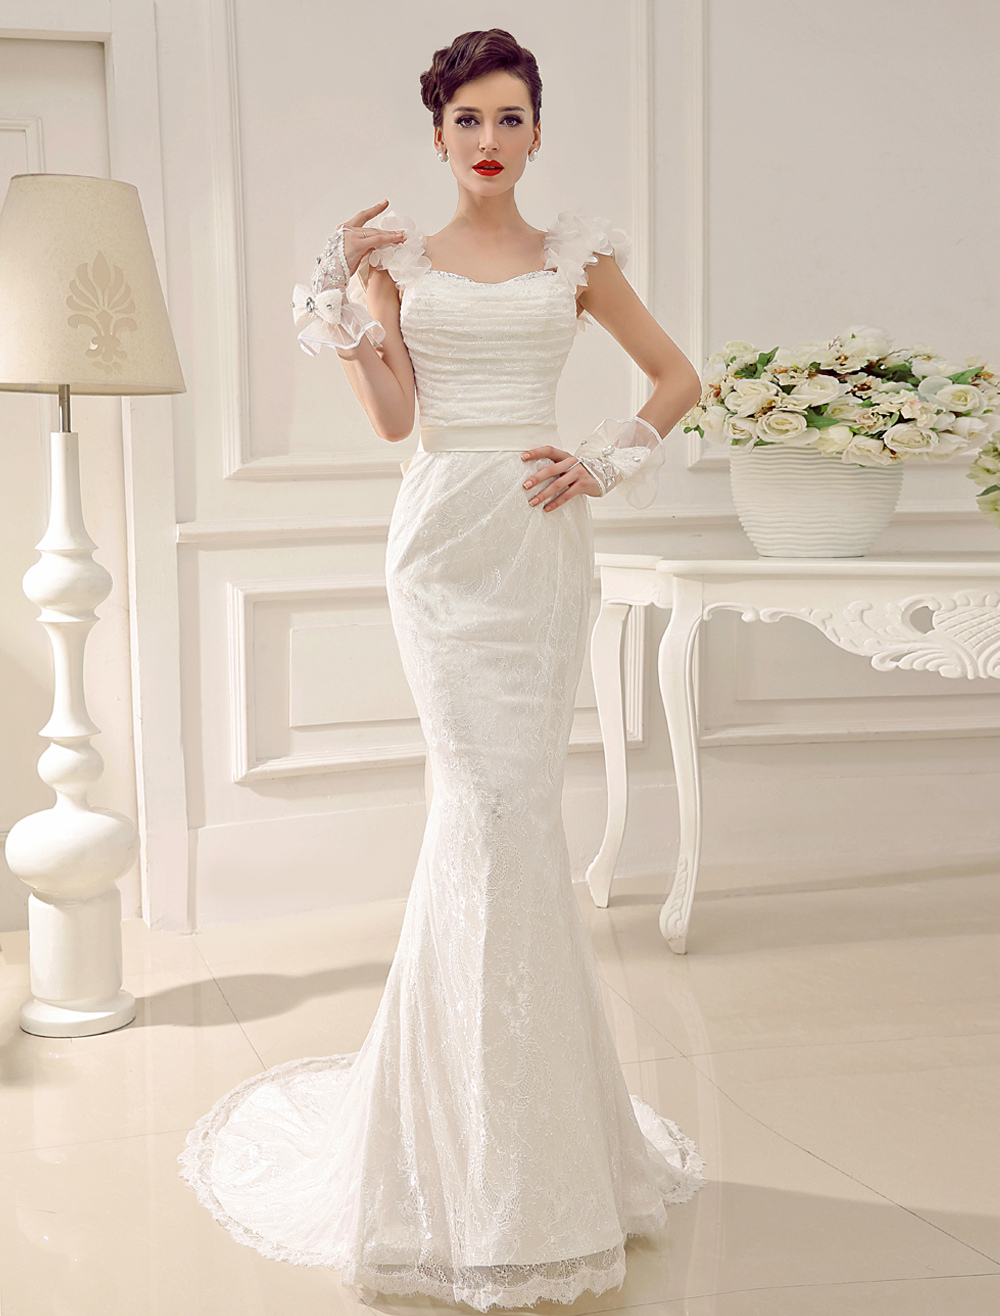 Sweetheart Neck Court Train Lace Flower Sequin Bridal Wedding Gown With Sash Milanoo